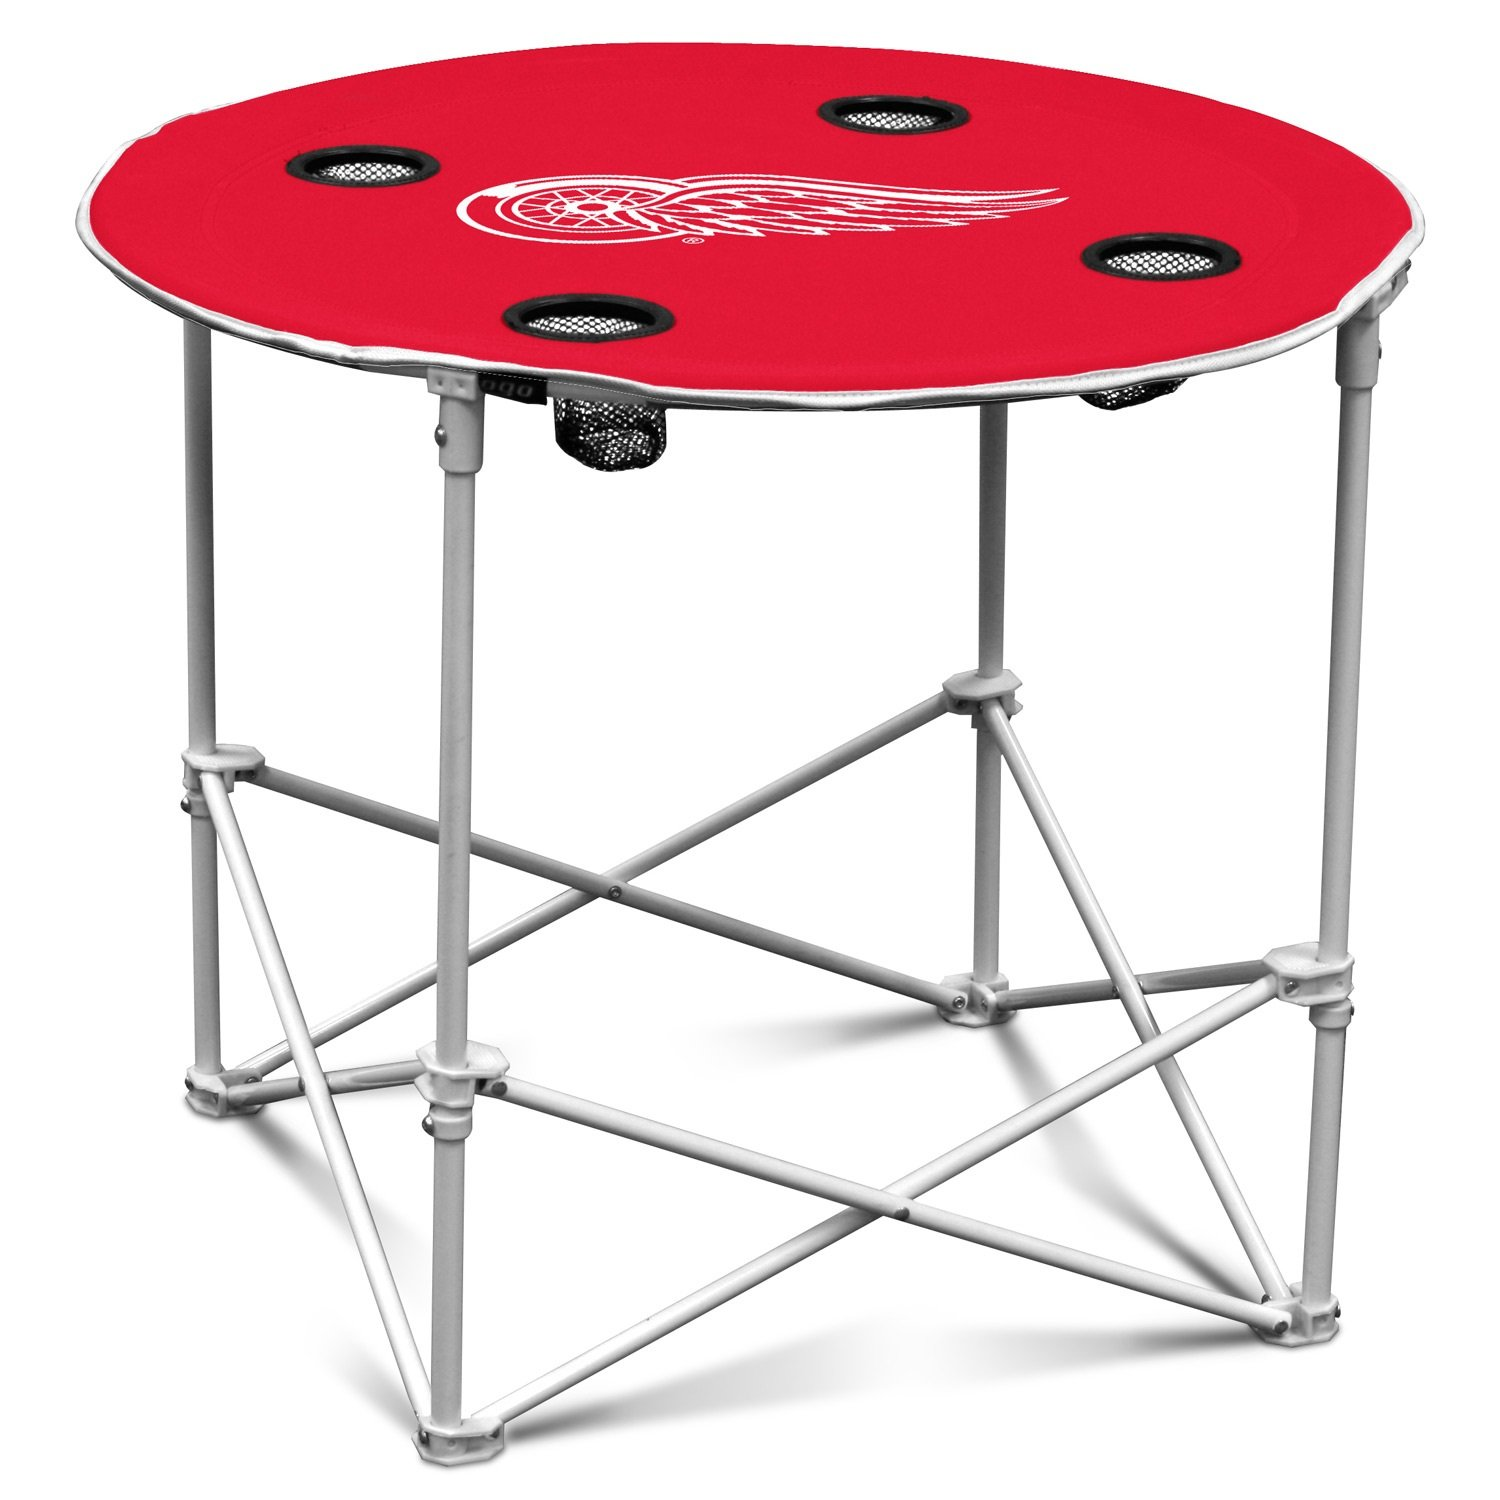 round table legs logo detroit red wings camp outside nic accent decorating ideas outdoor camping folding bag tall counter height pub set tool storage cabinet white lacquer end